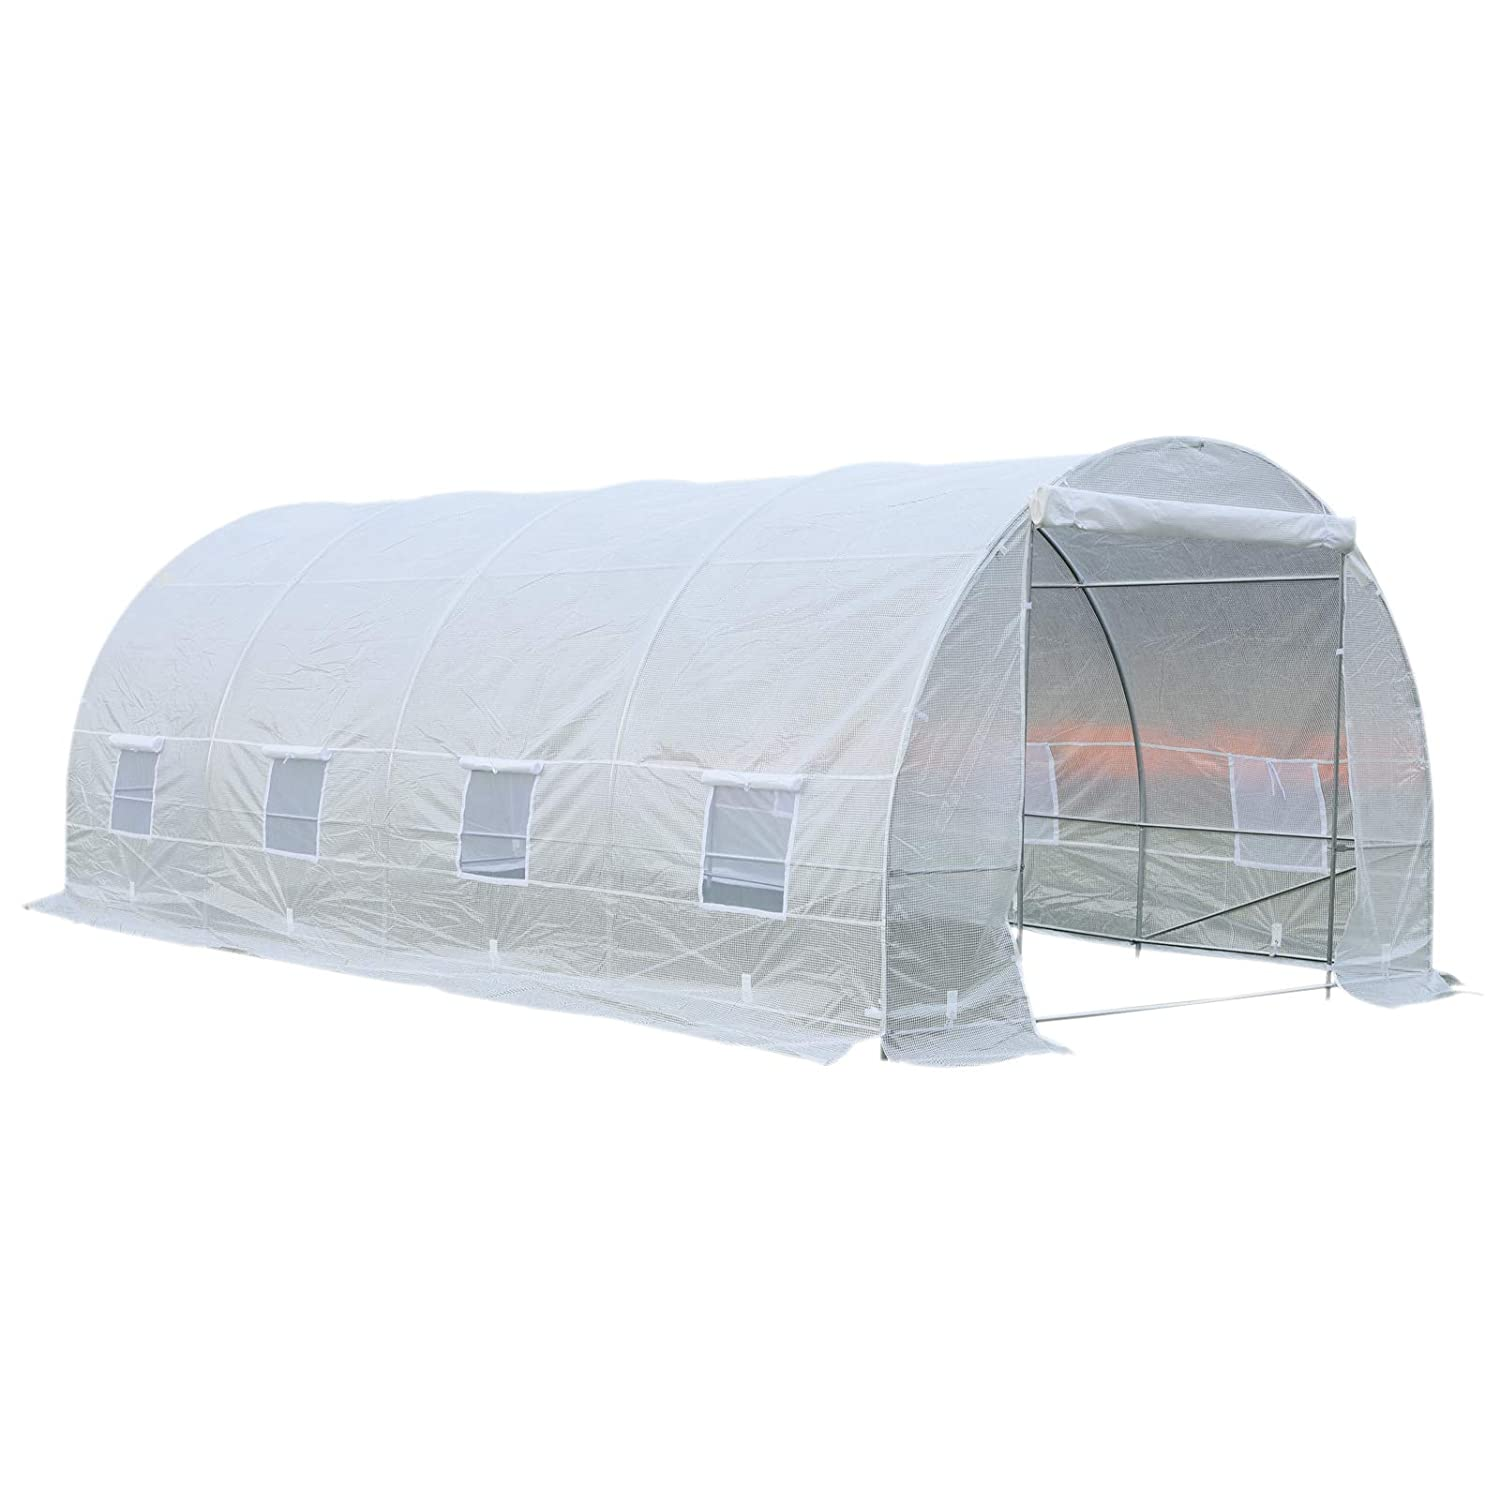 White Outsunny 20/' x 10/' x 7/' Freestanding High Tunnel Walk-in Garden Greenhouse Kit